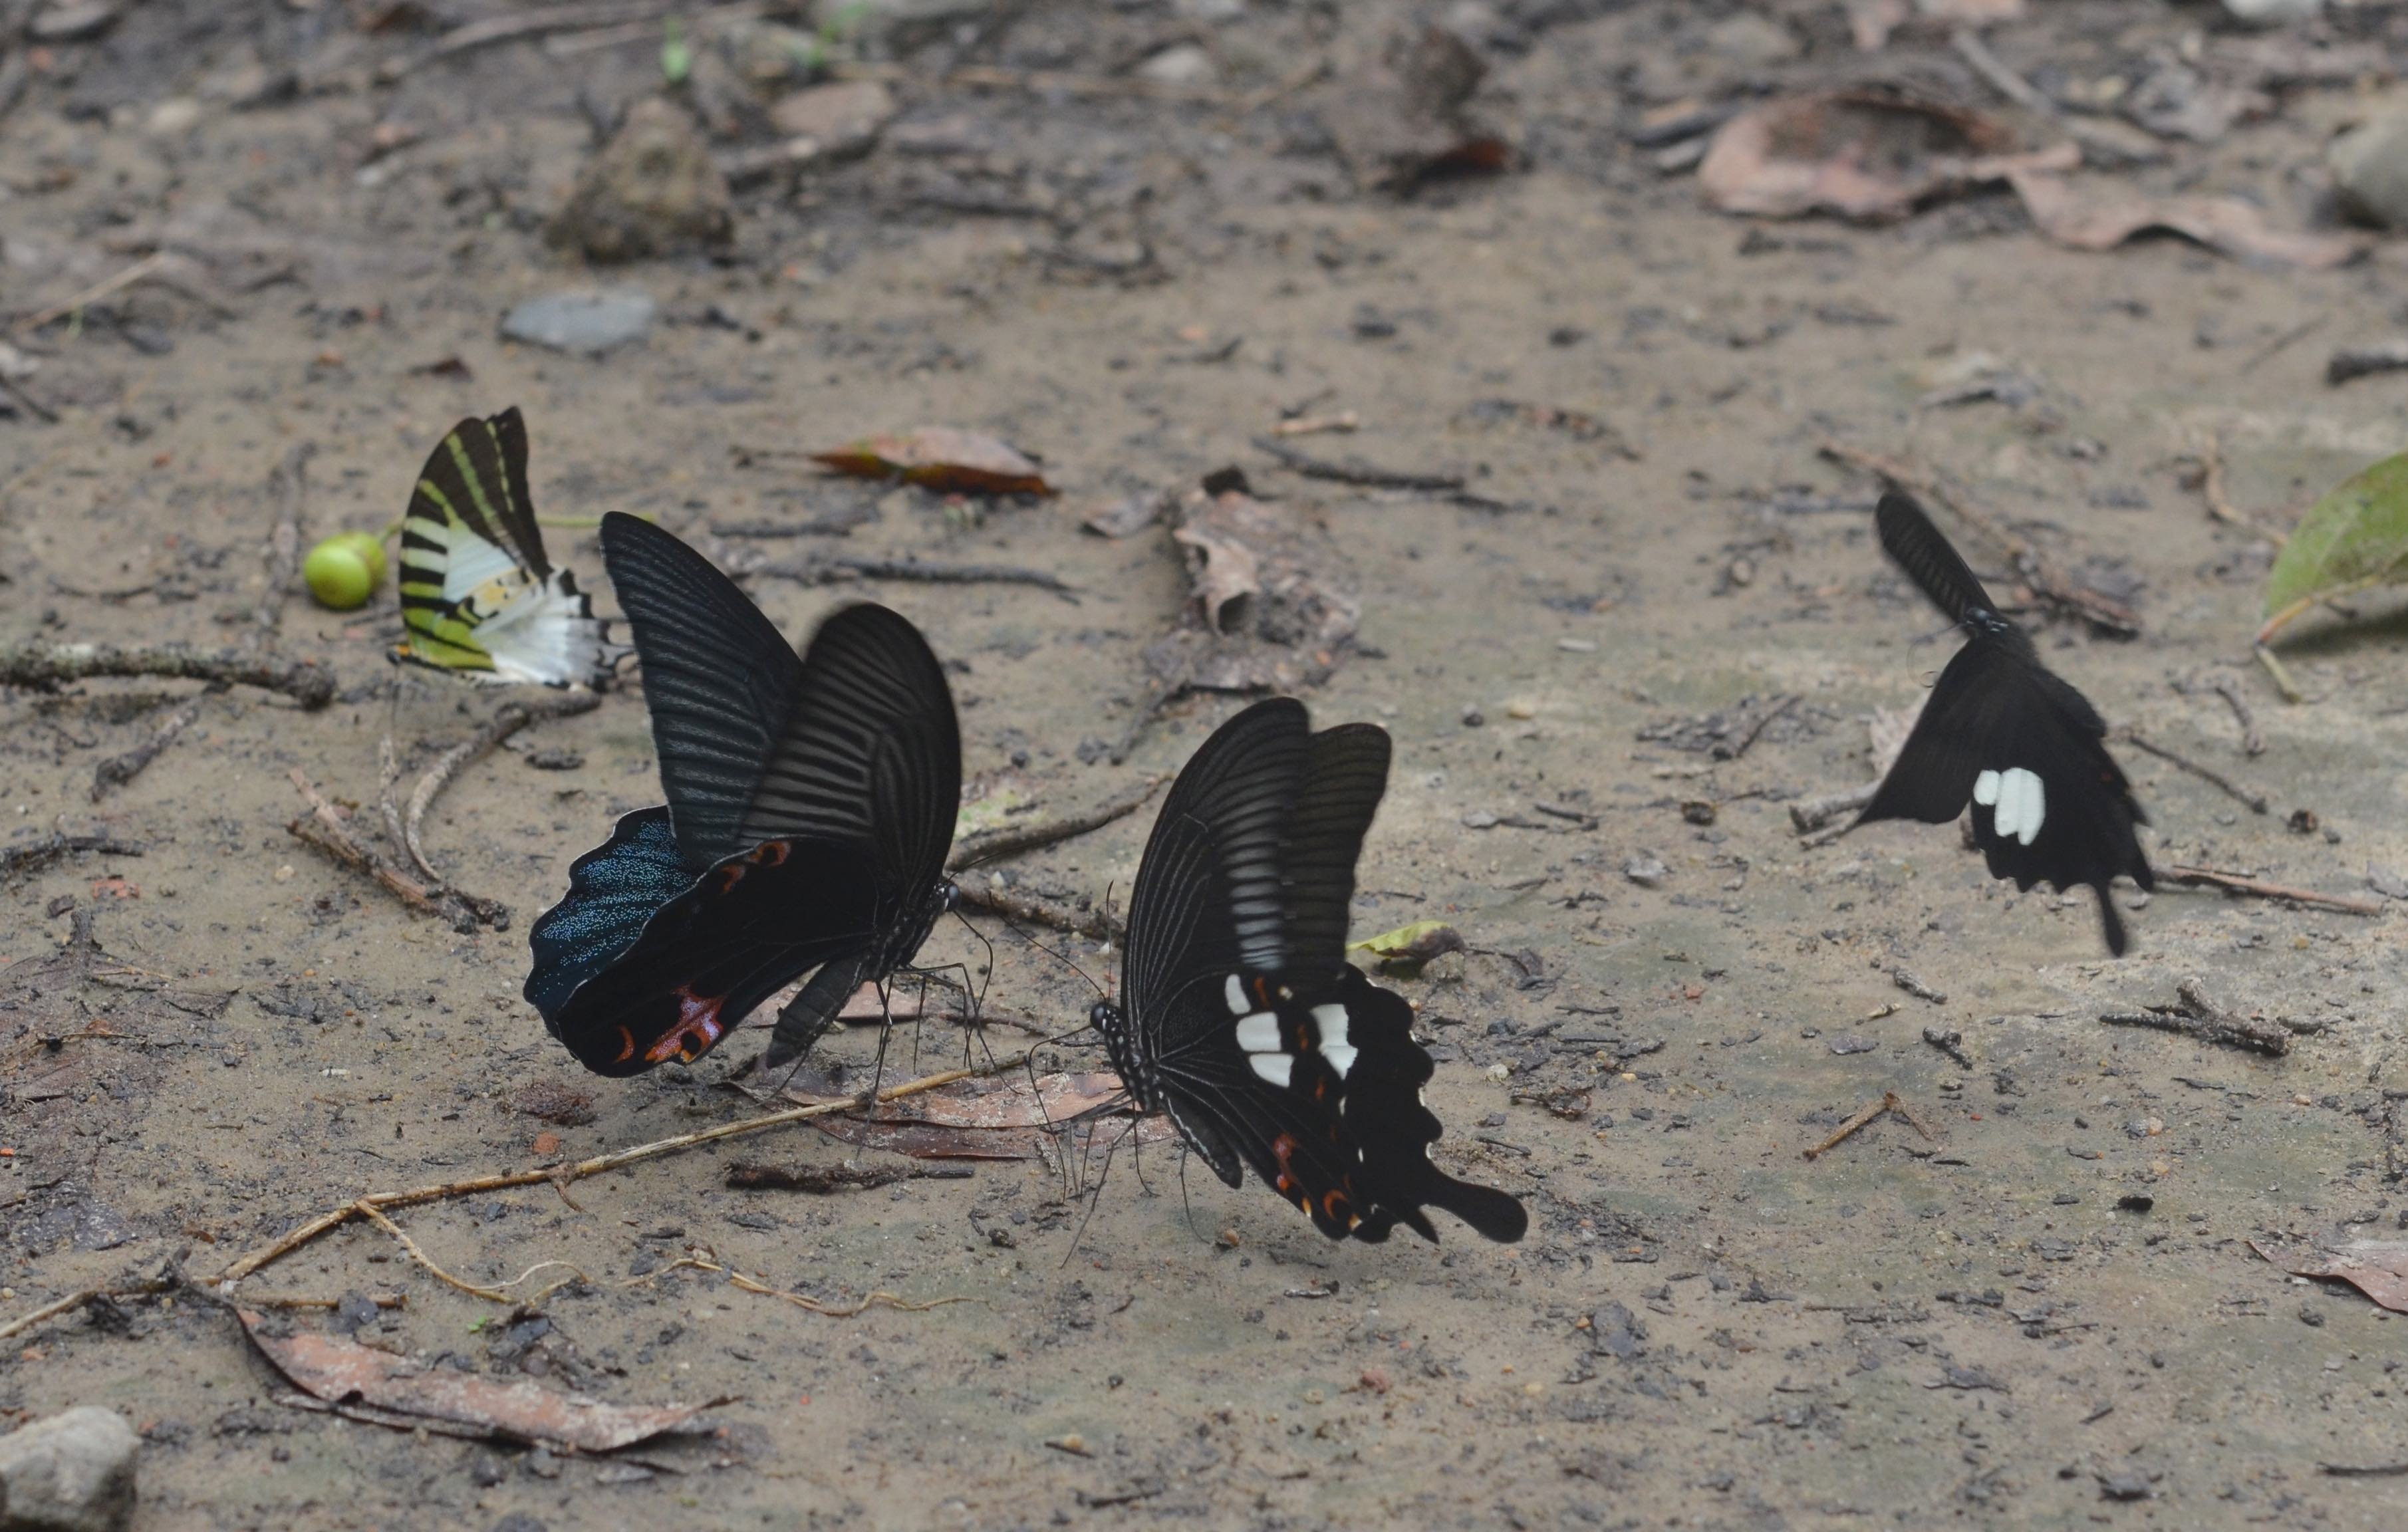 A forest's many secrets, such as these common mormon butterflies, are revealed as one walks through it, which is the only way to explore this sanctuary. Photo: Mitali Baruah  - CC BY-SA 4.0